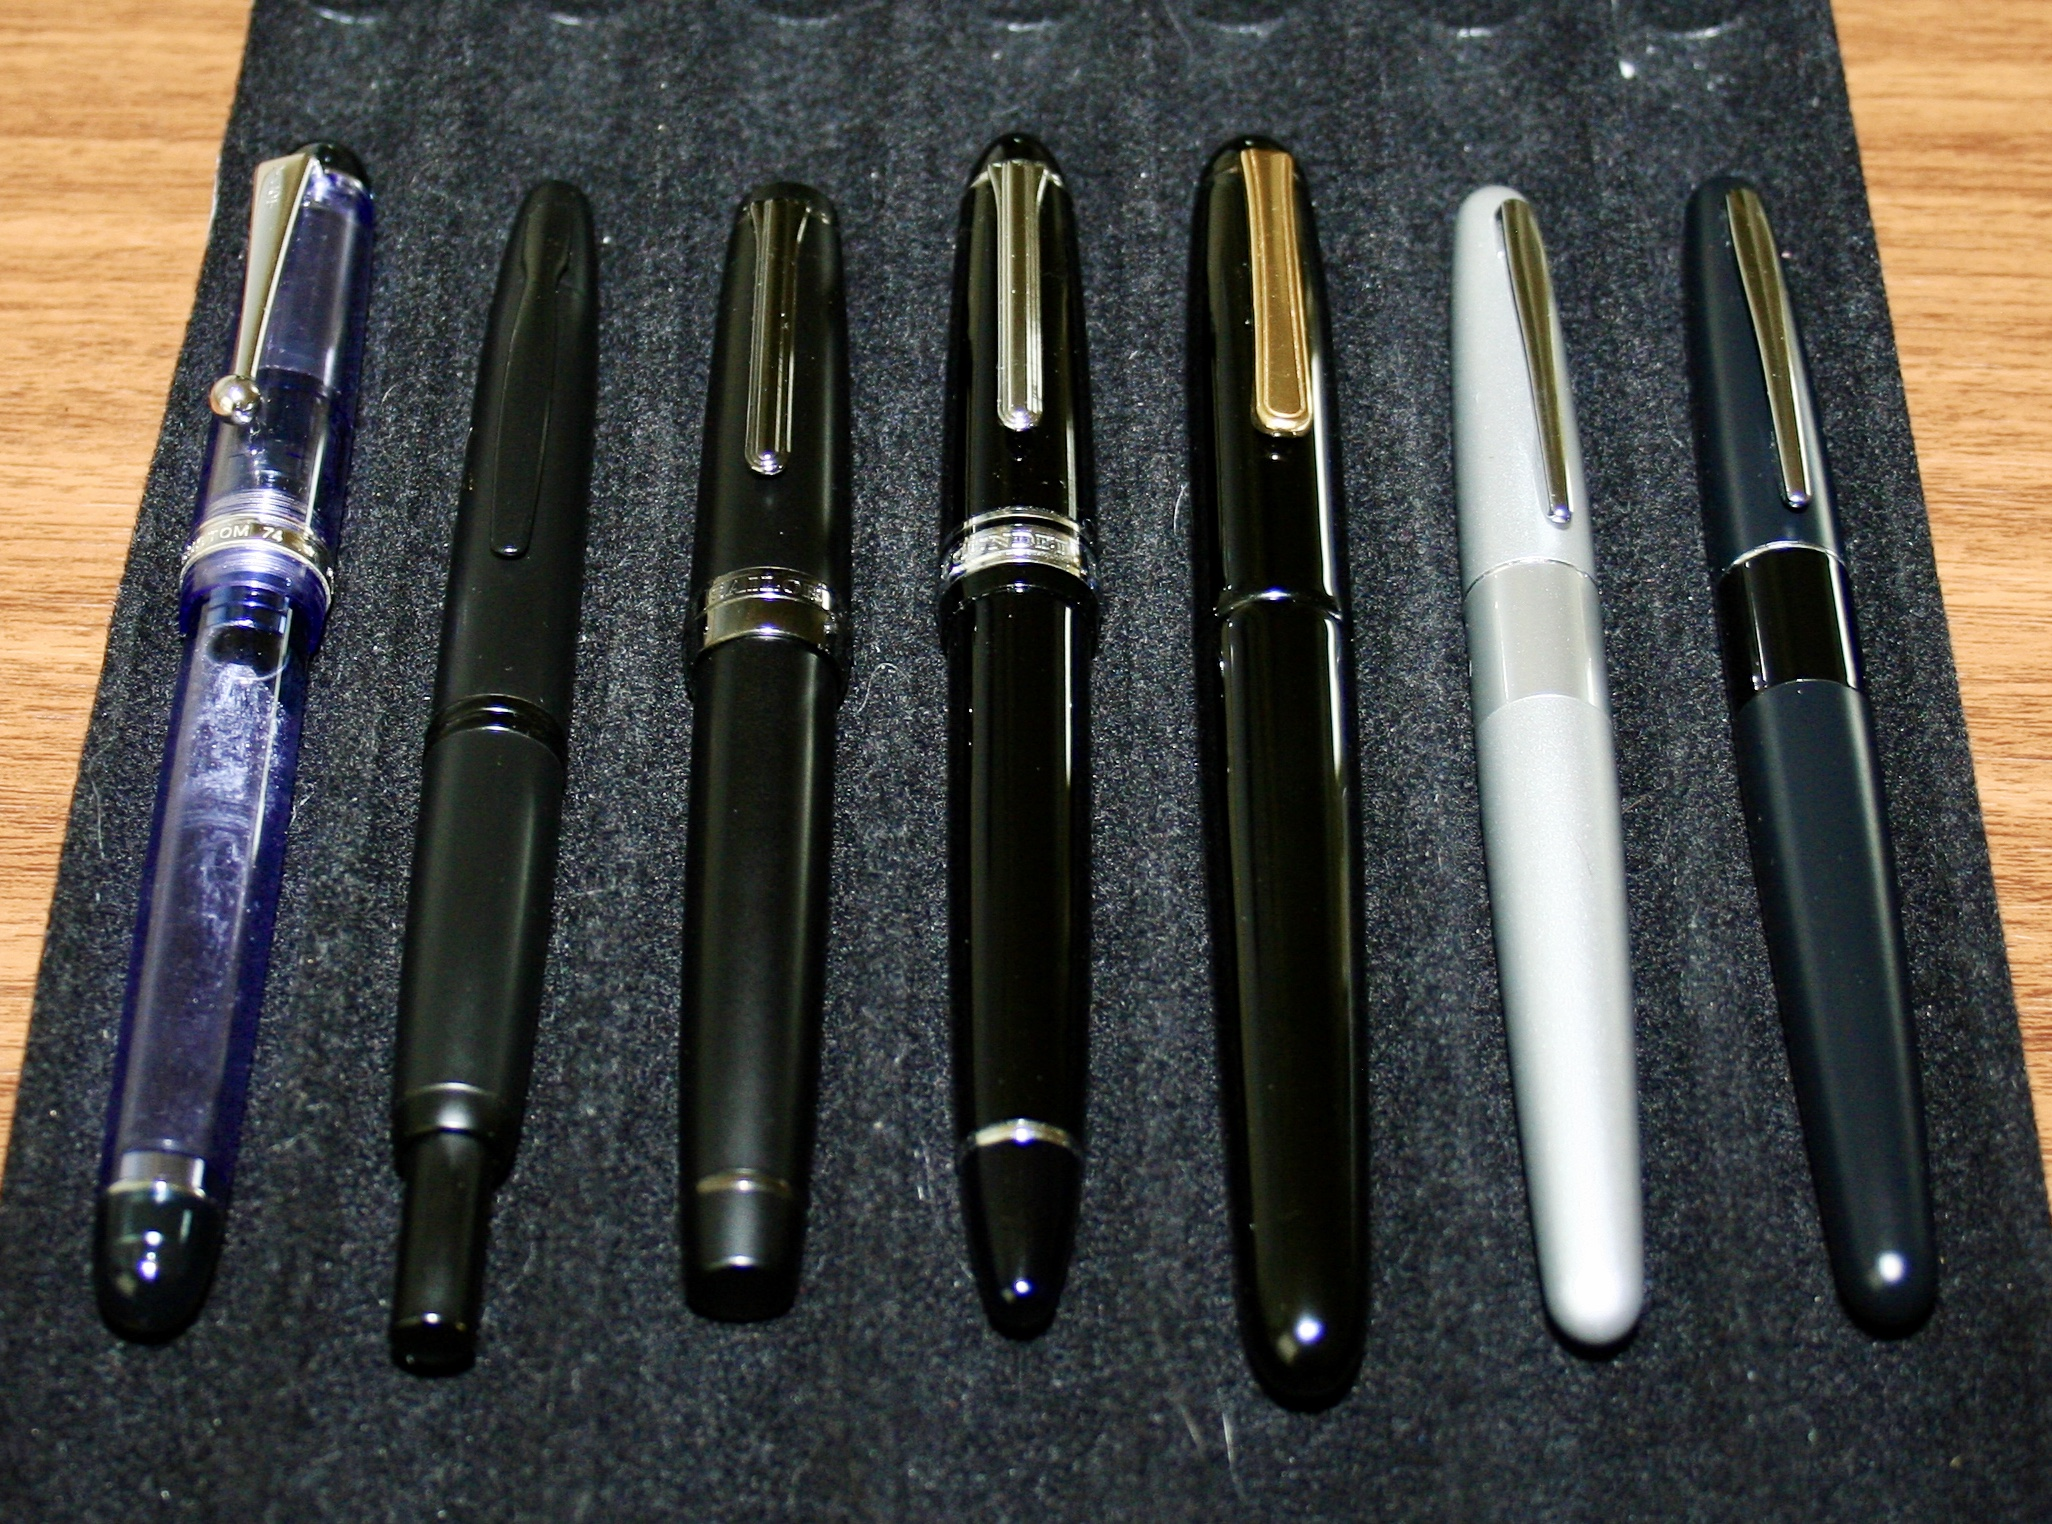 An older photo of the Custom 74 violet demonstrator (far left) that I no longer have. This picture offers a good size comparison of the Custom 74 to the (from left)  Pilot Vanishing Point ,  Sailor Pro Gear Imperial Black ,  Sailor 1911 Large ,  Nakaya Portable Writer , and the  Pilot Metropolitan .